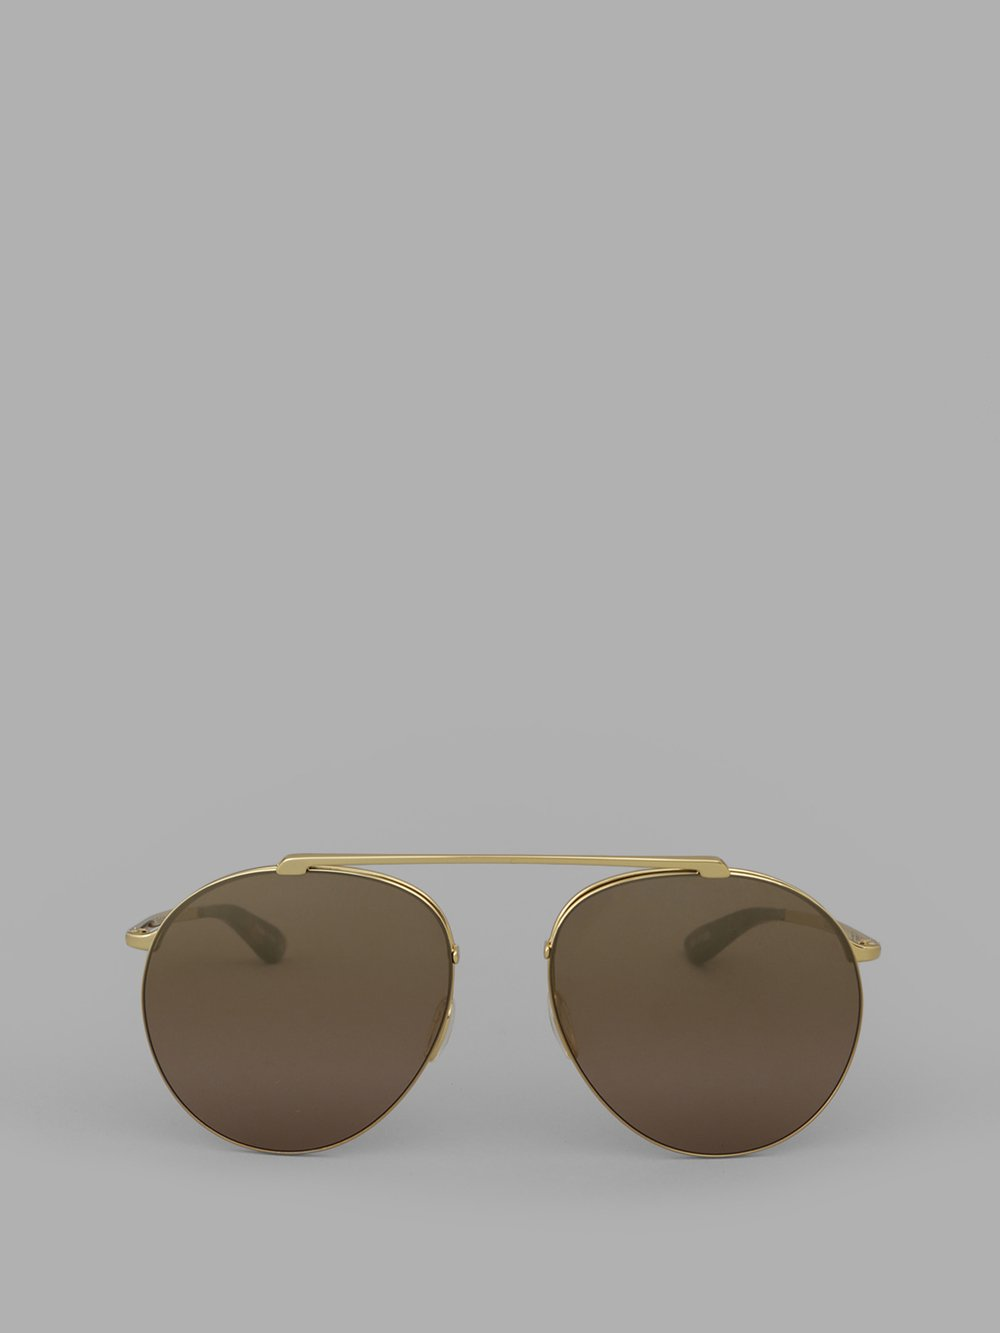 CHRISTIAN ROTH GOLD REDUCER SUNGLASSES